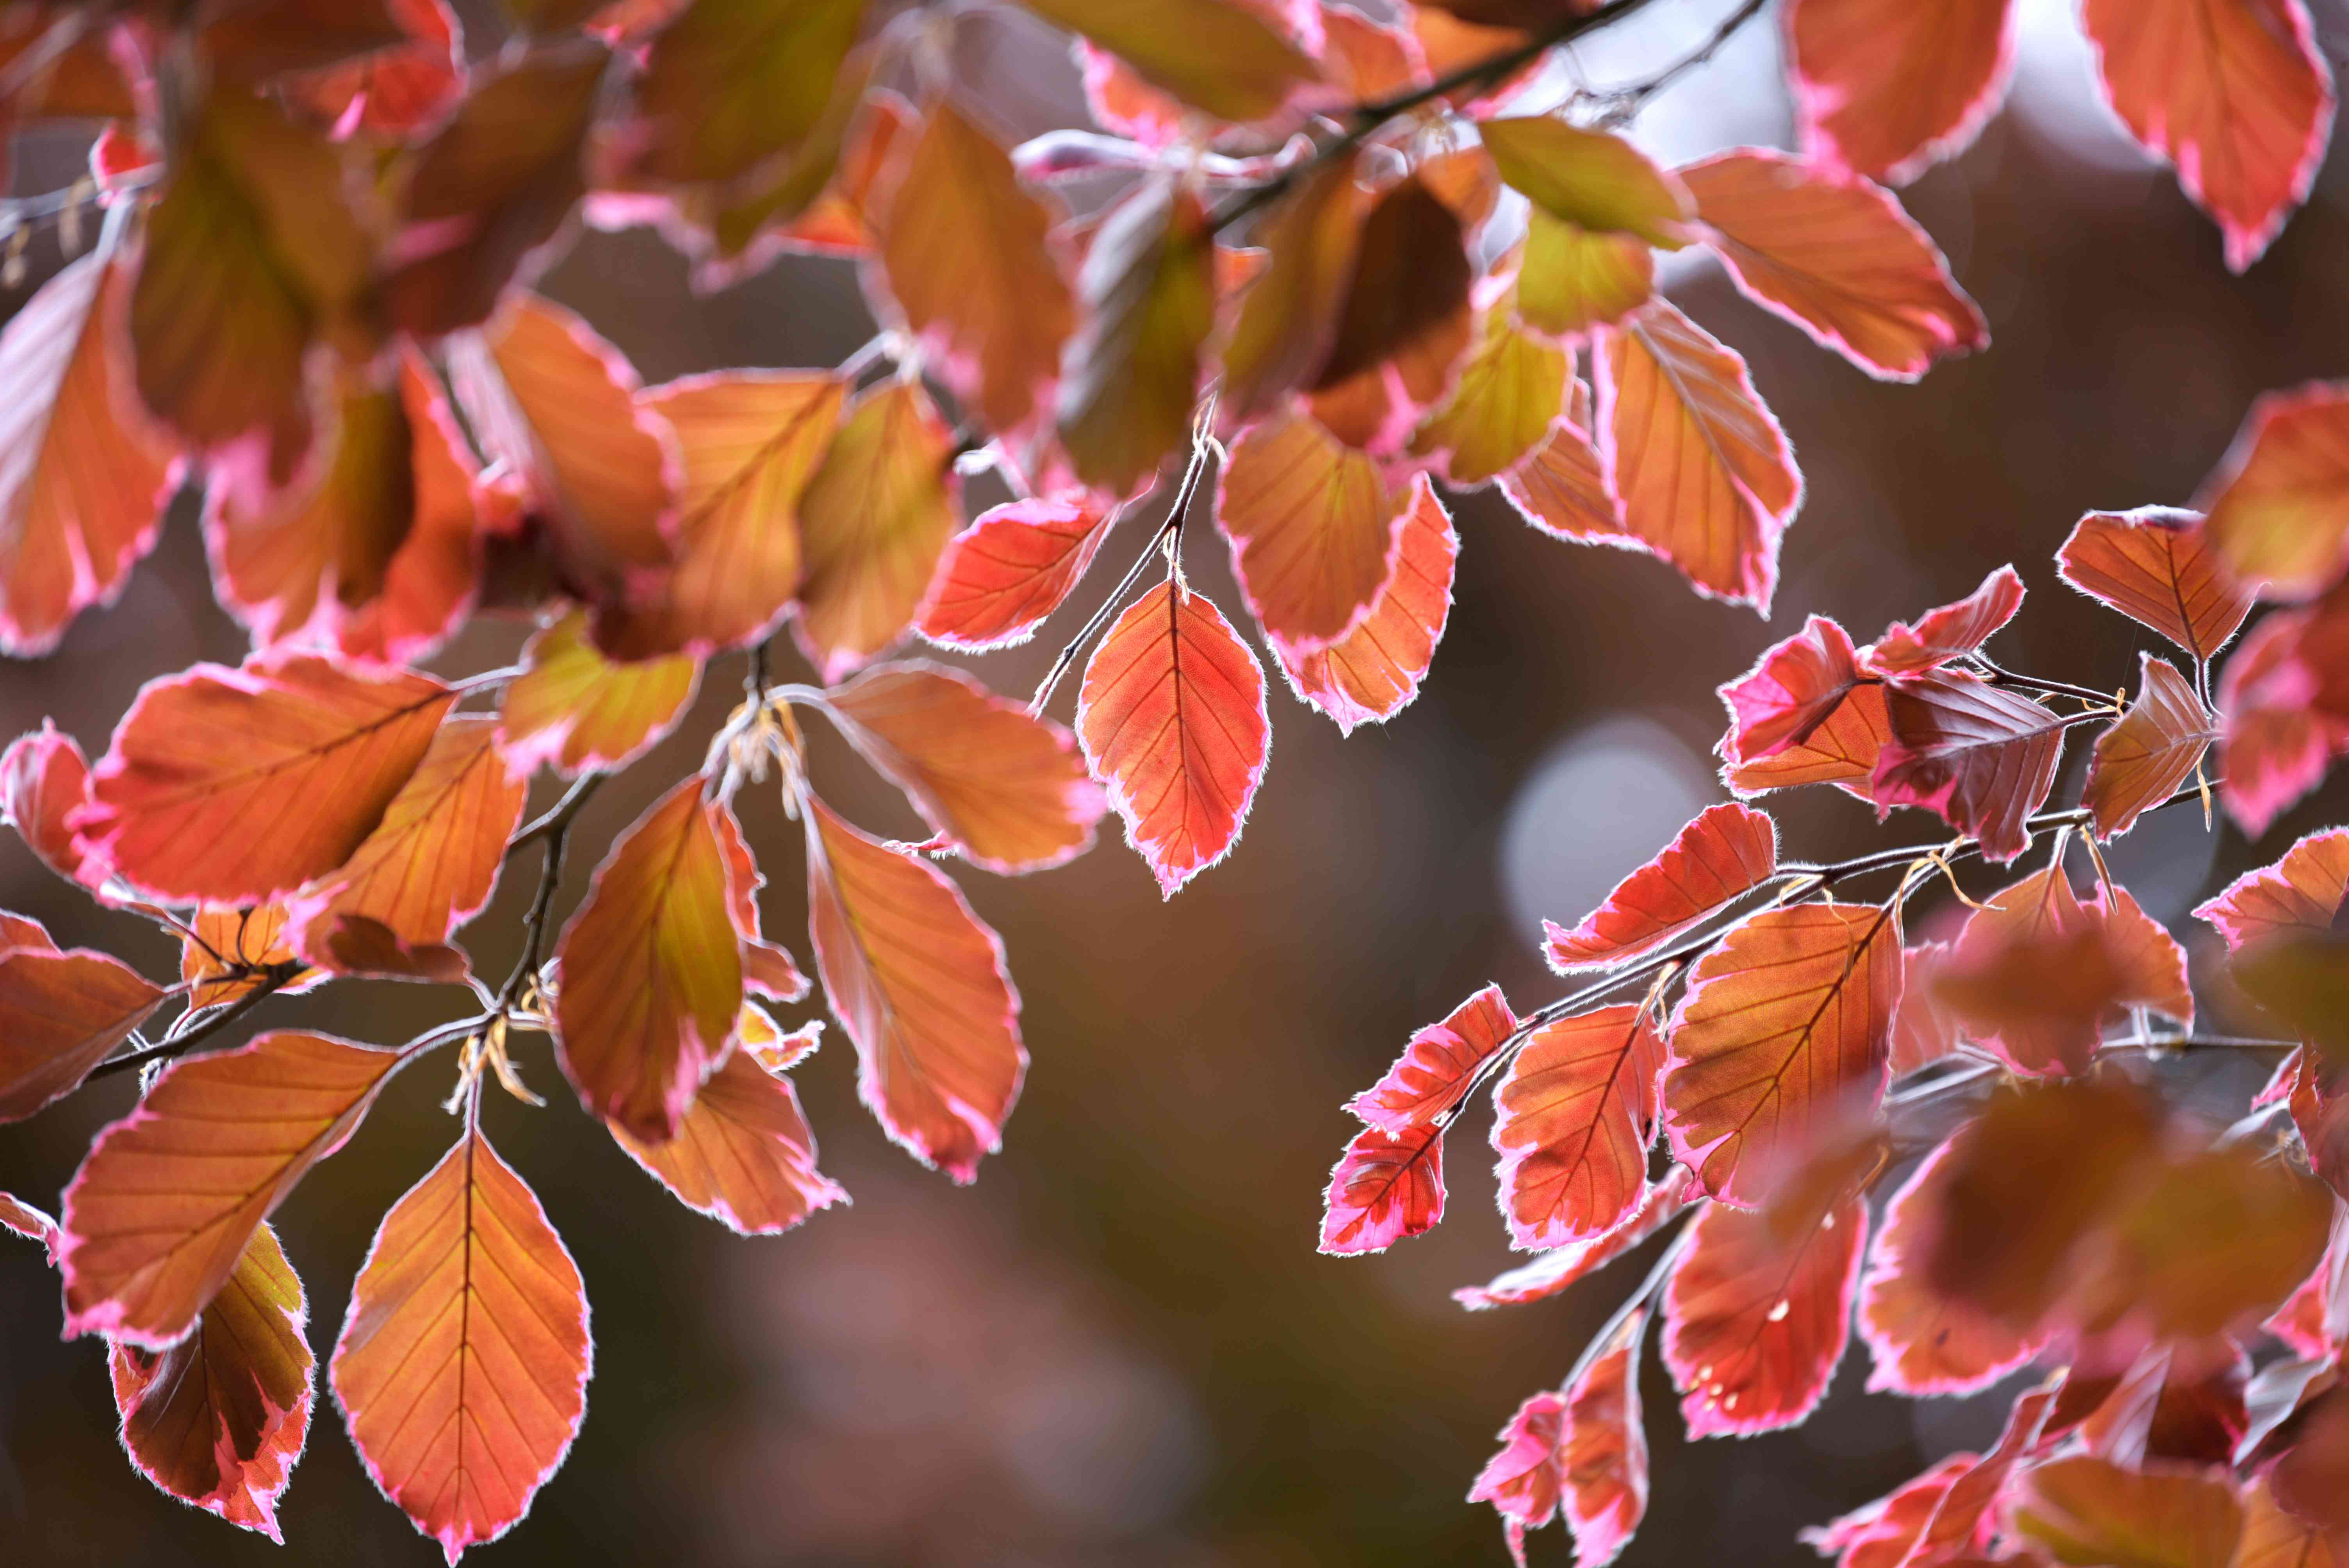 Tricolor beech tree stem with copper red and brown leaves closeup